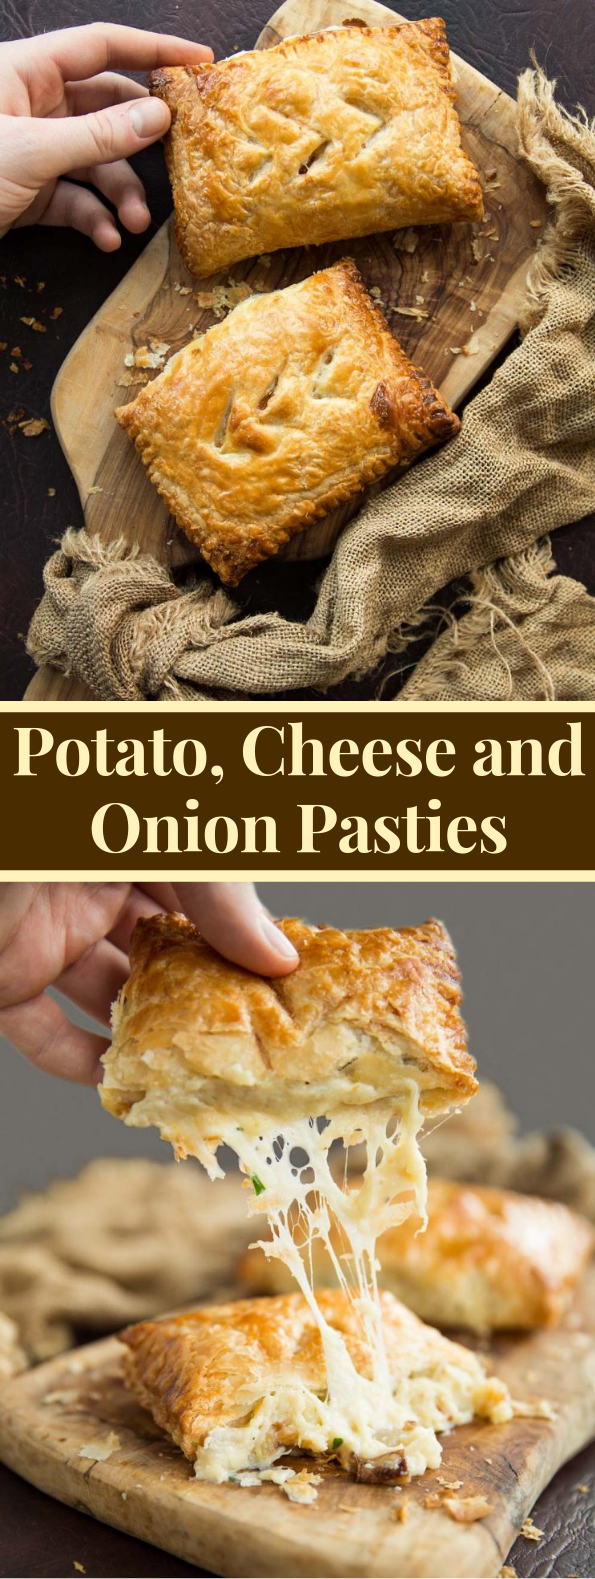 Potato, Cheese and Onion Pasties #dinner #pastry